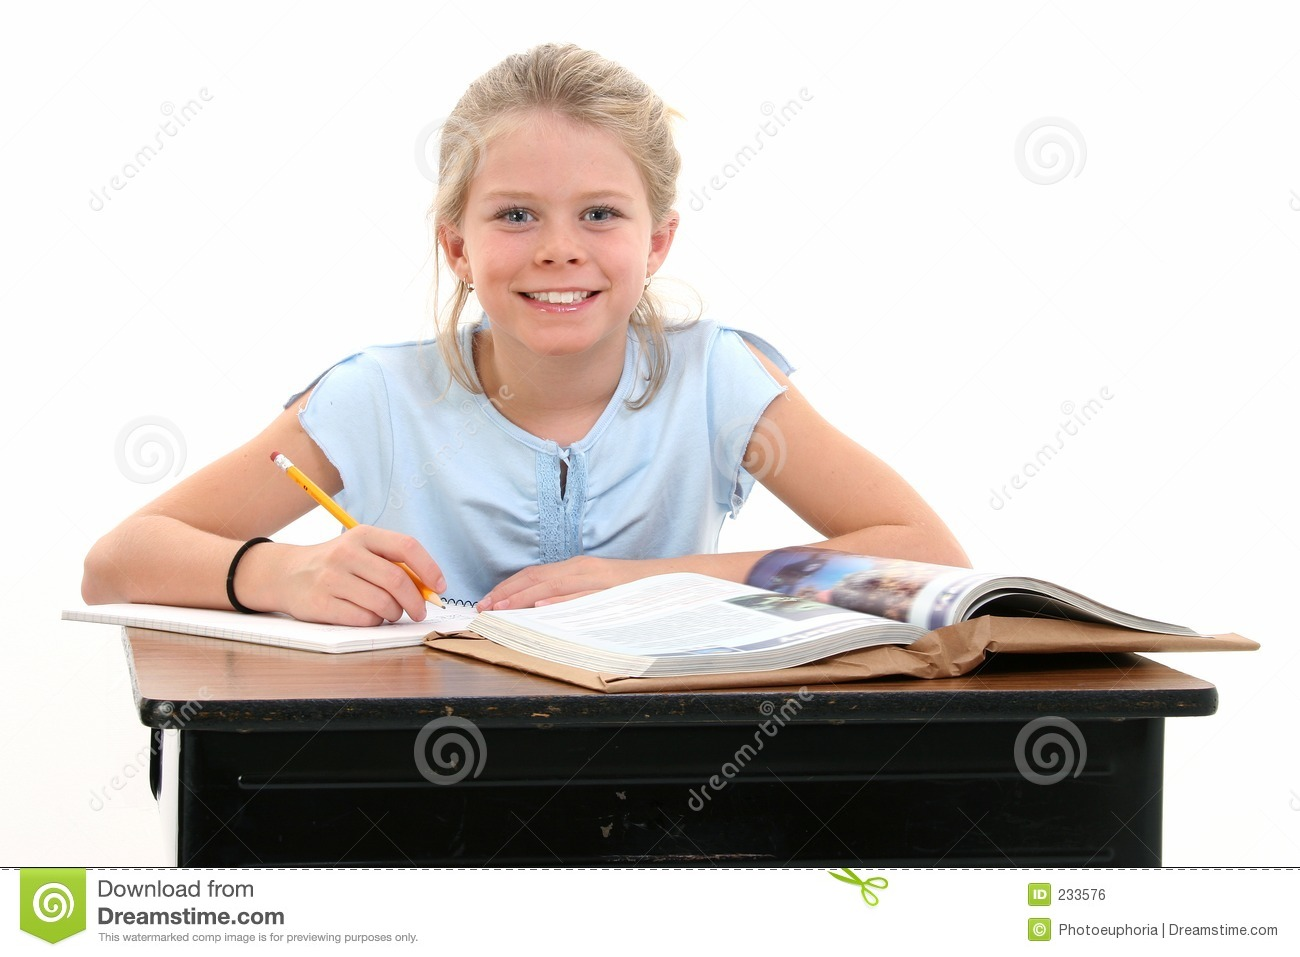 Beautiful young girl sitting at school desk royalty free stock image image 233576 - Desk girl image in ...